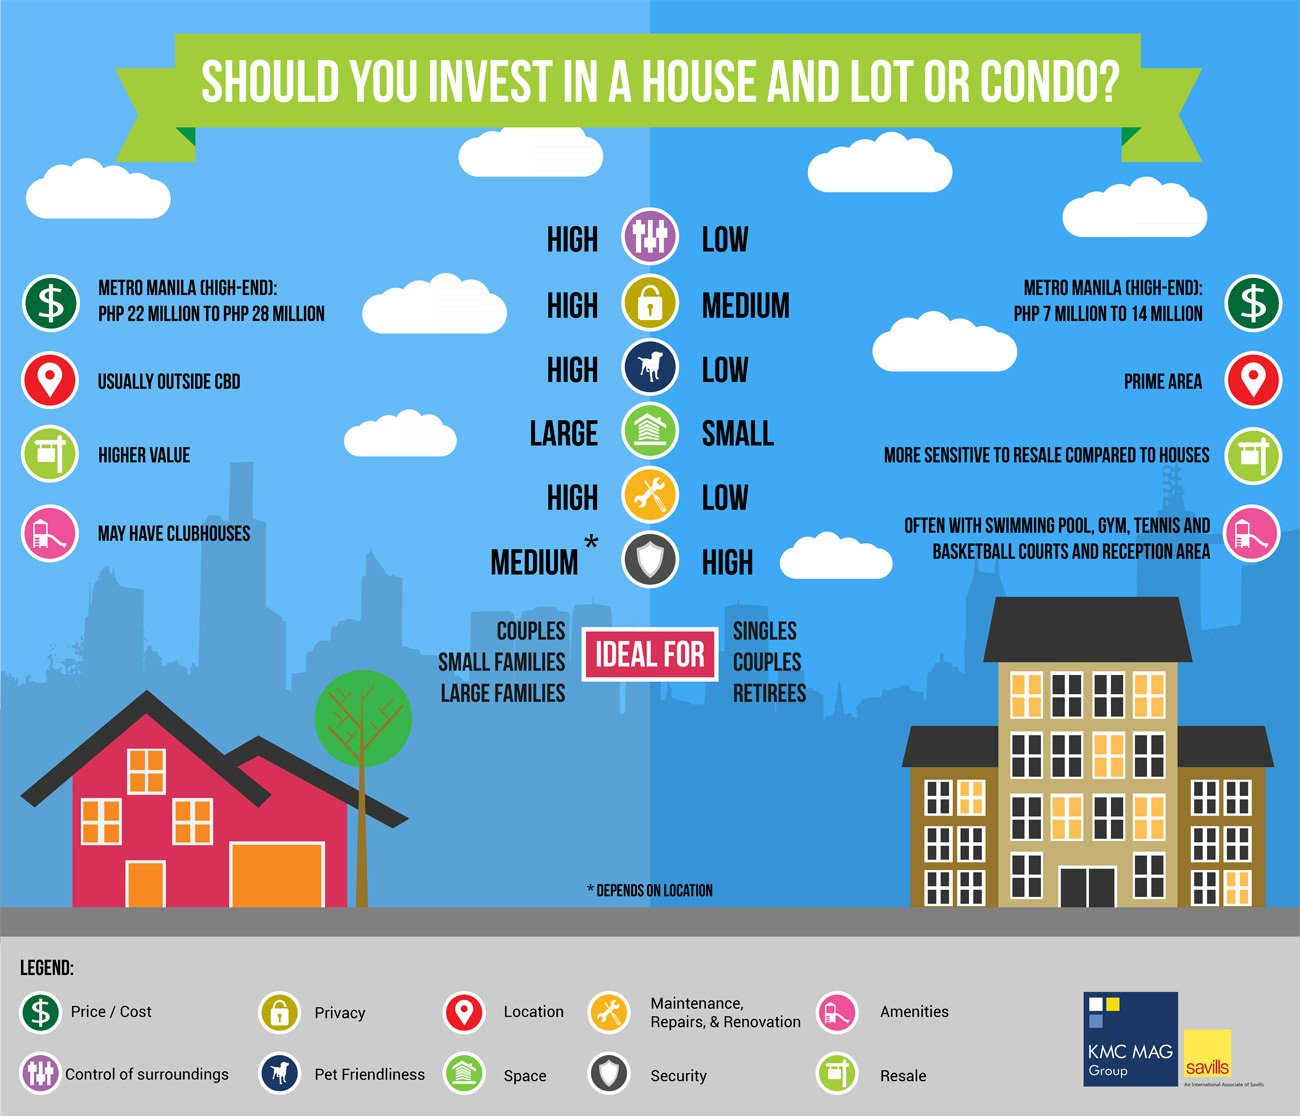 Condo vs house investment property carlton investment group